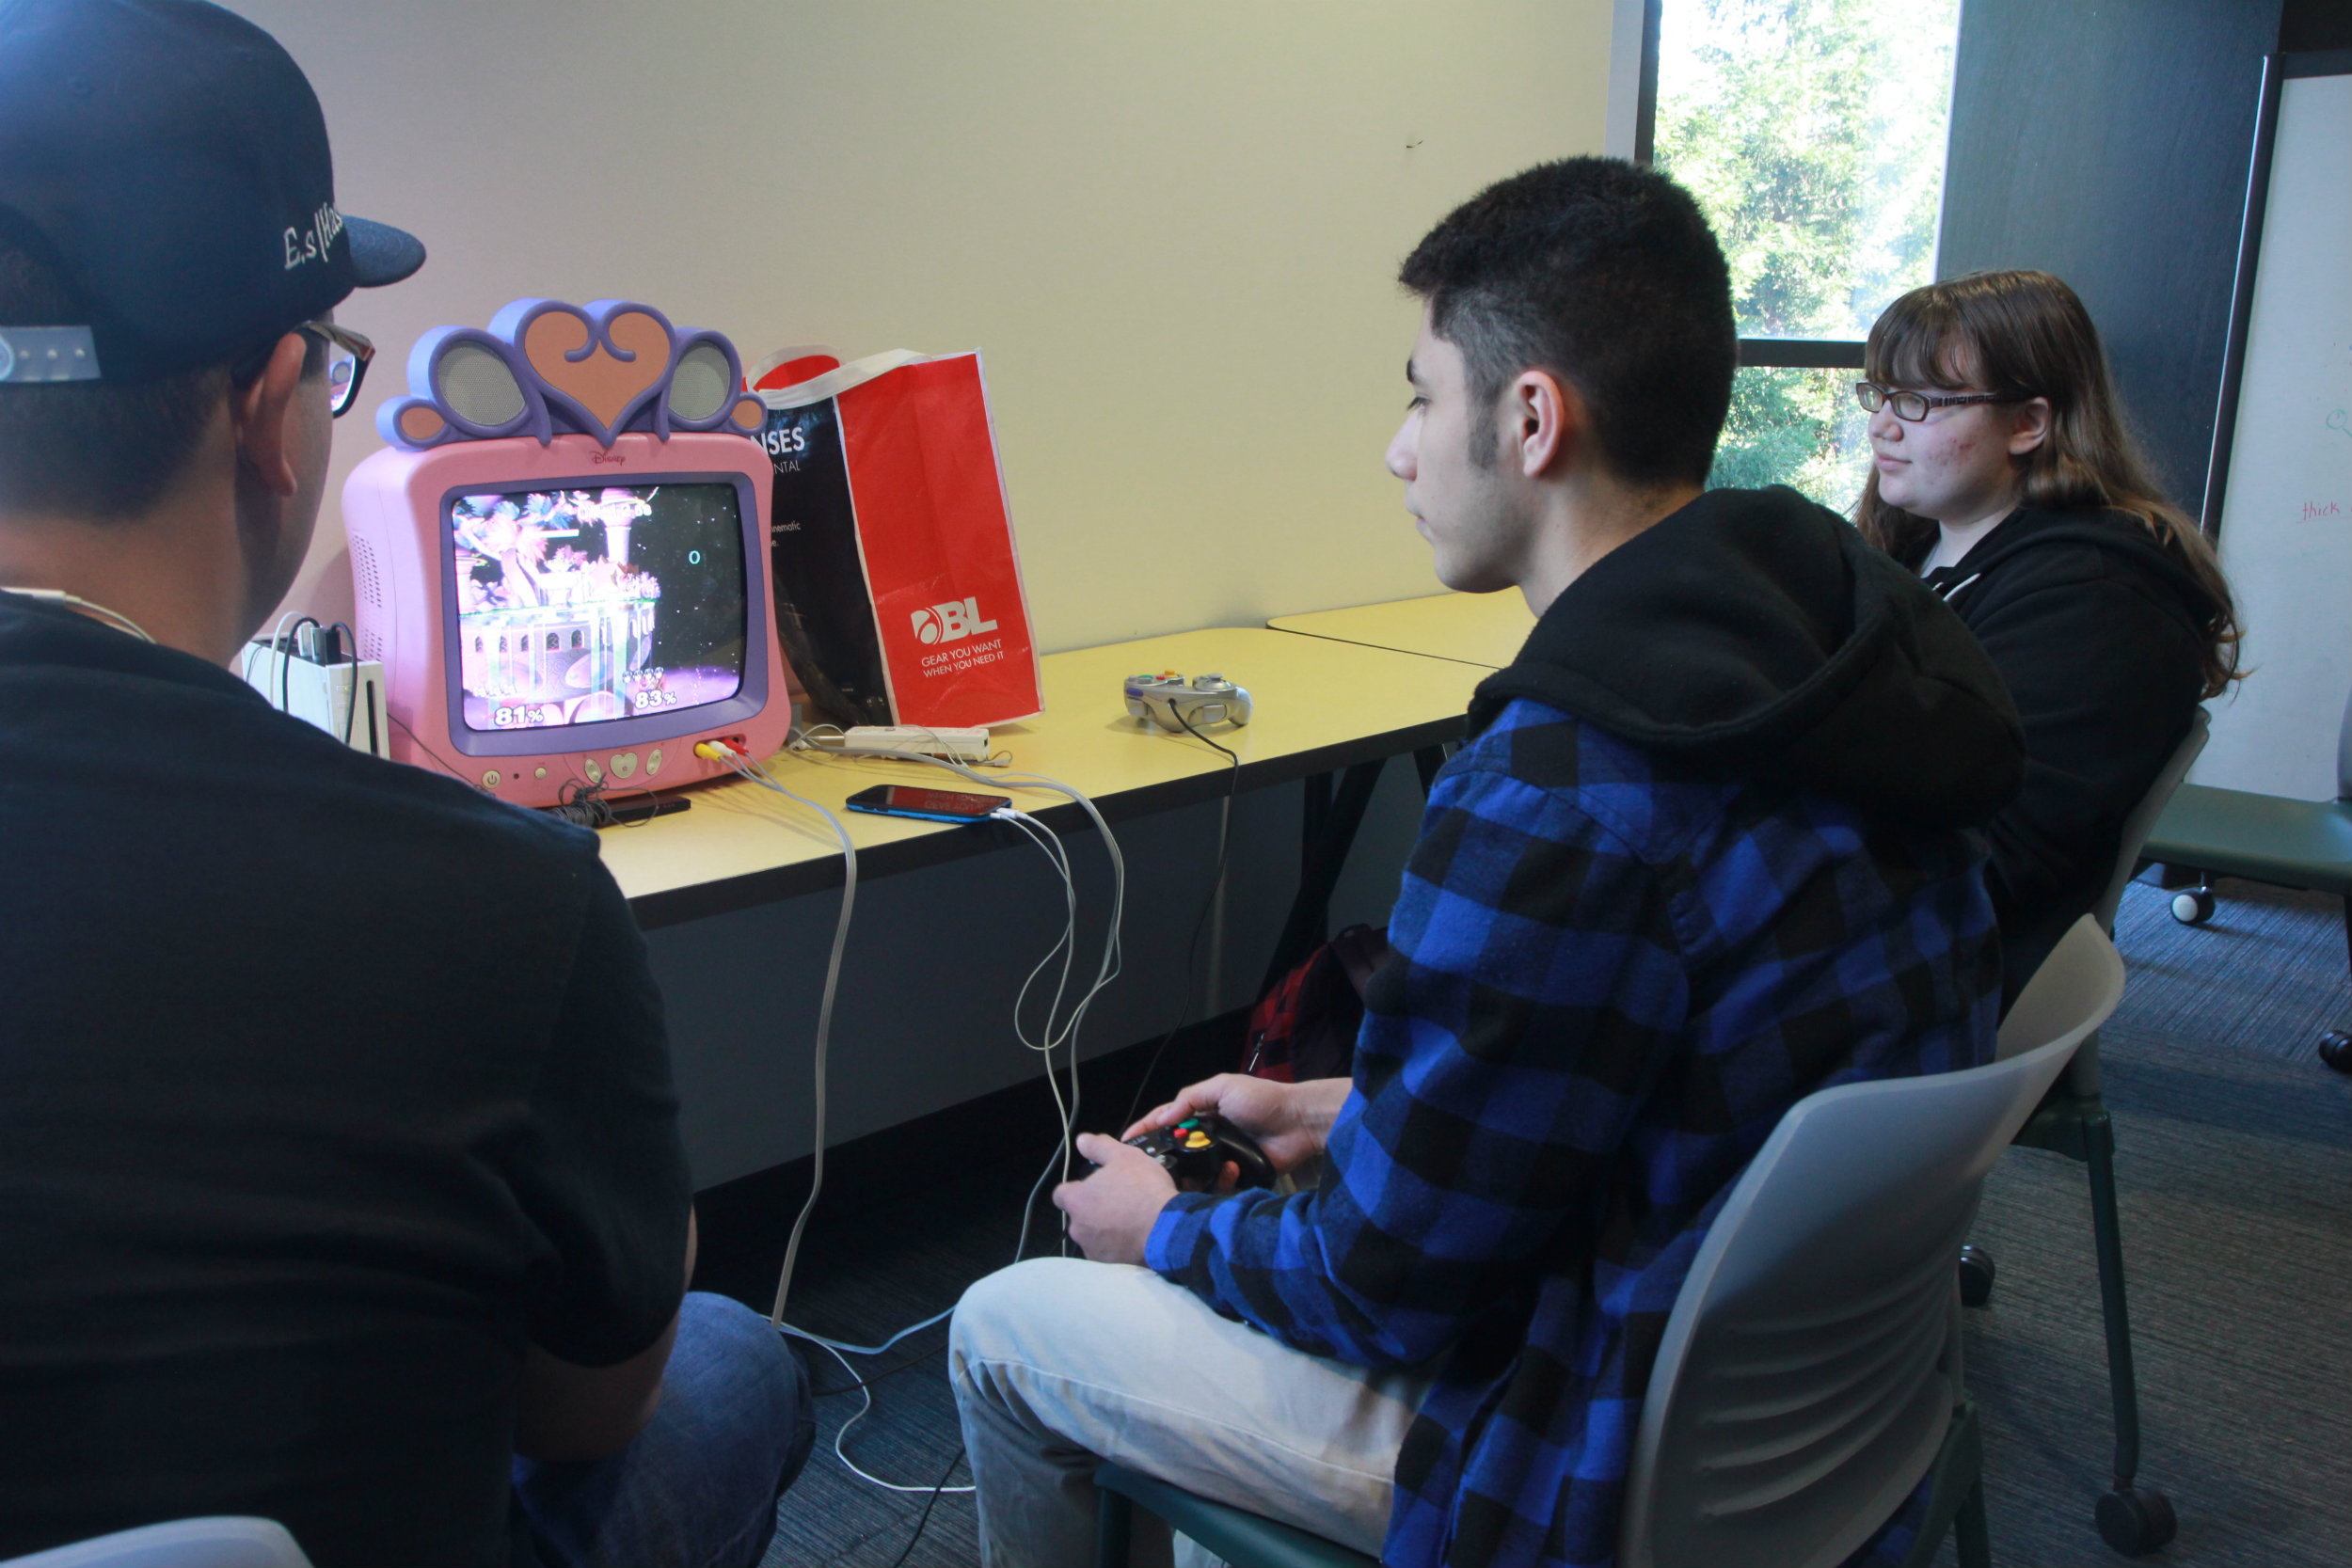 Members Allan Bona, left, and Alex Blanco, right, play the Super Smash Bros. Melee game on their pink TV on the third floor of the AIRC, Thursday, Nov. 3. (Photo by Harold Williams Jr.)